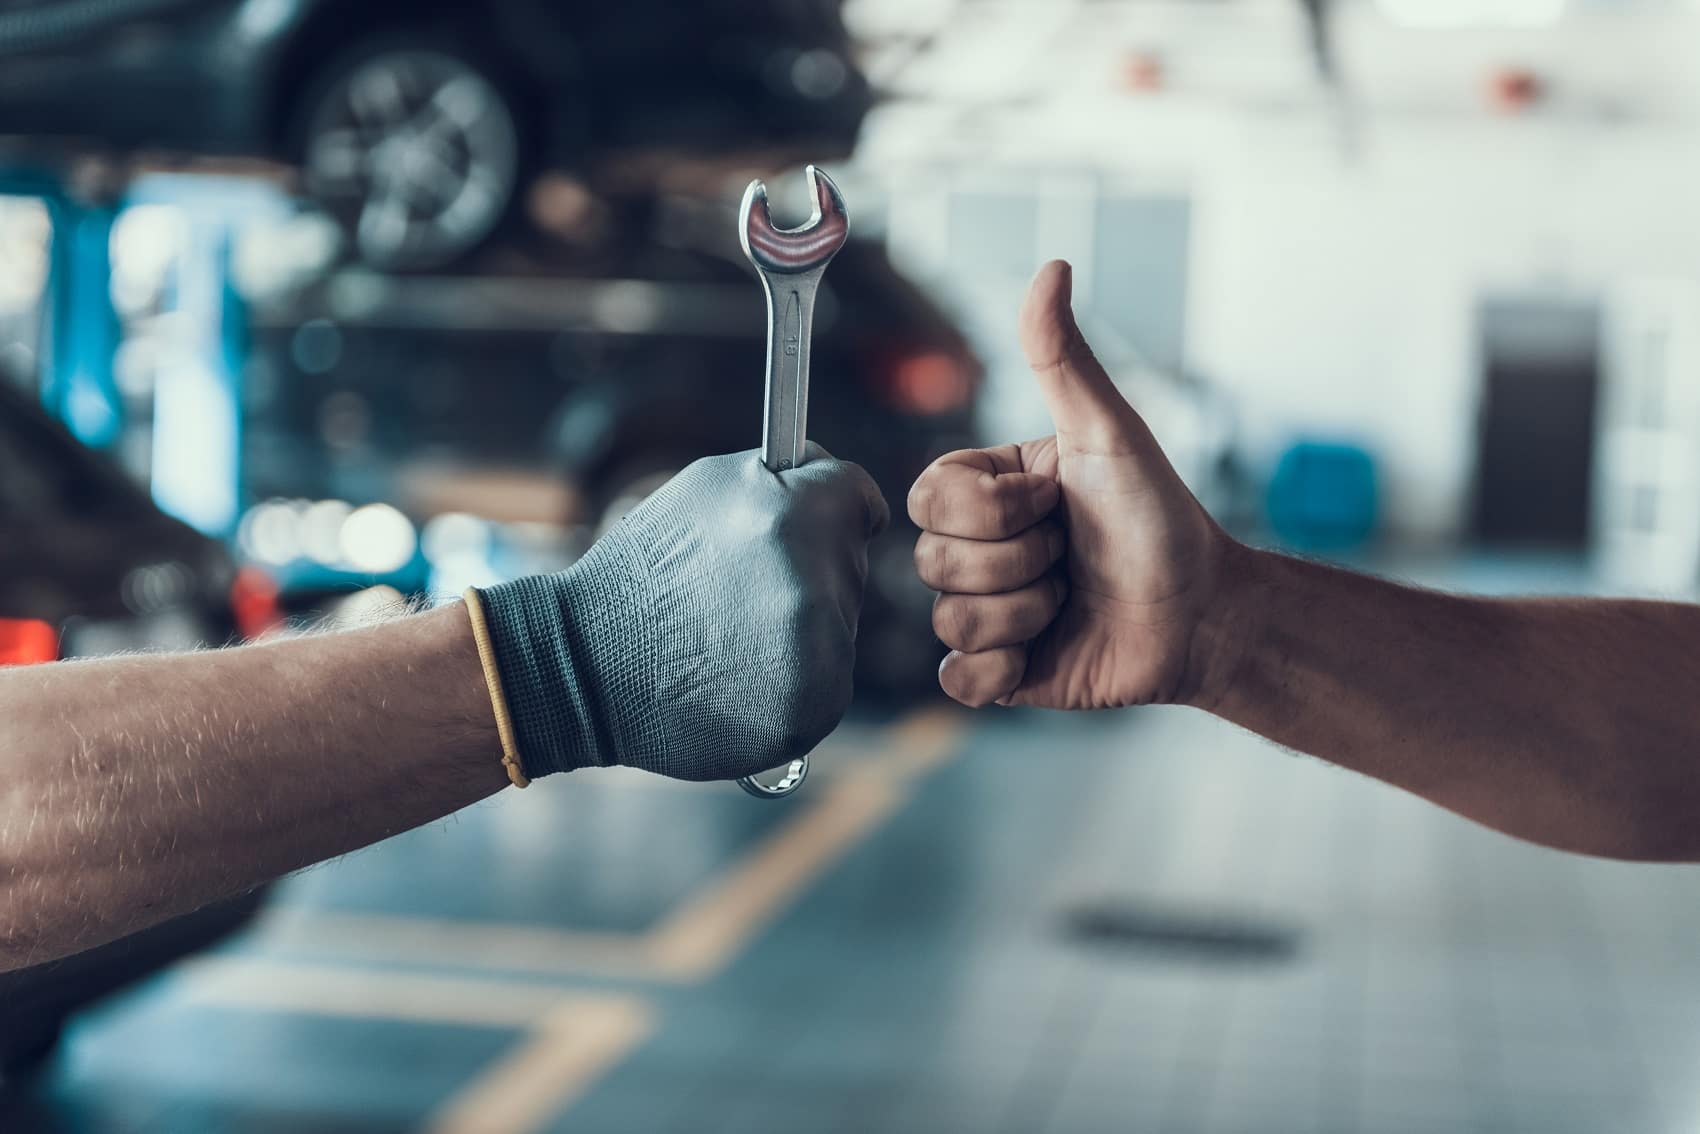 Thumbs up for good vehicle service